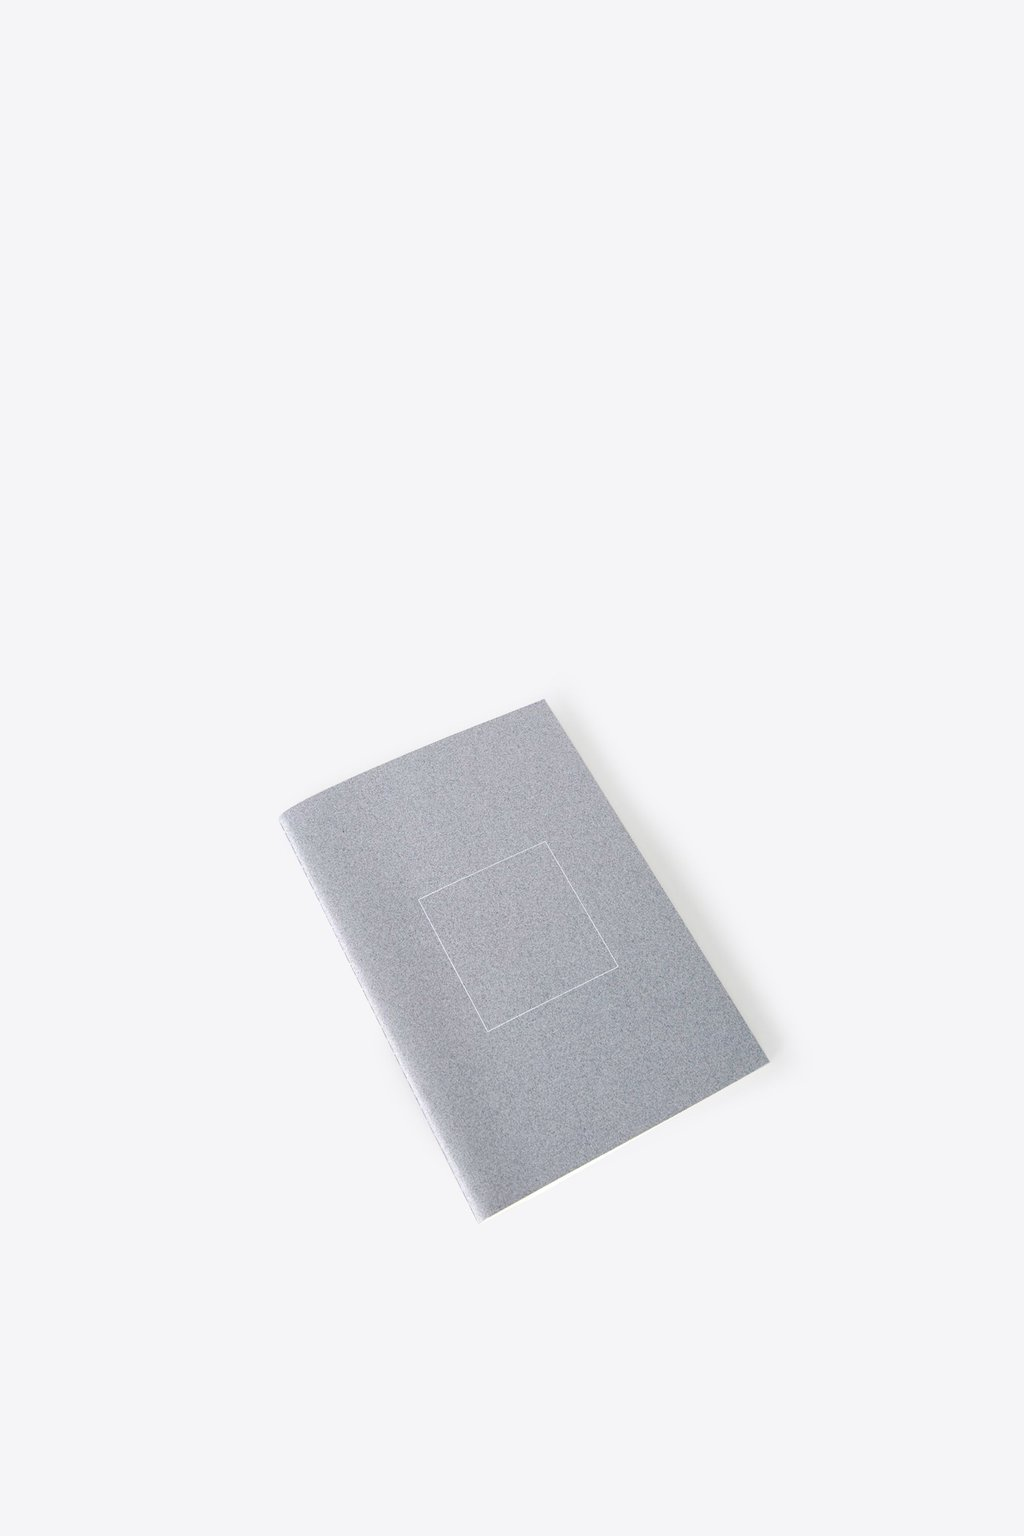 Square Print Grid Notebook 1856 Gray 2